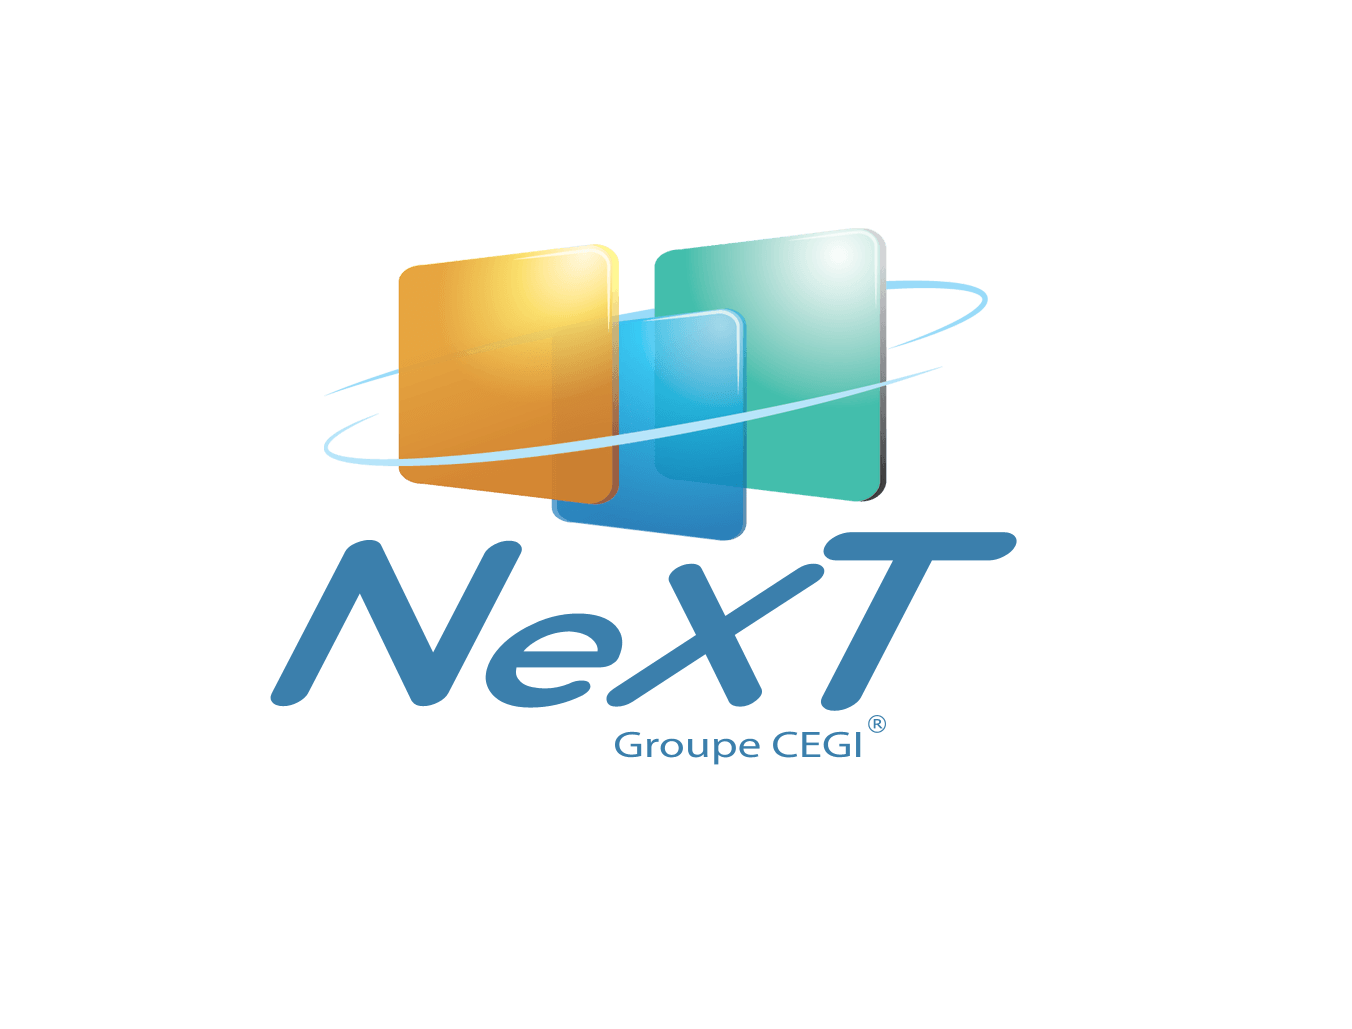 La solution NeXT du Groupe CEGI